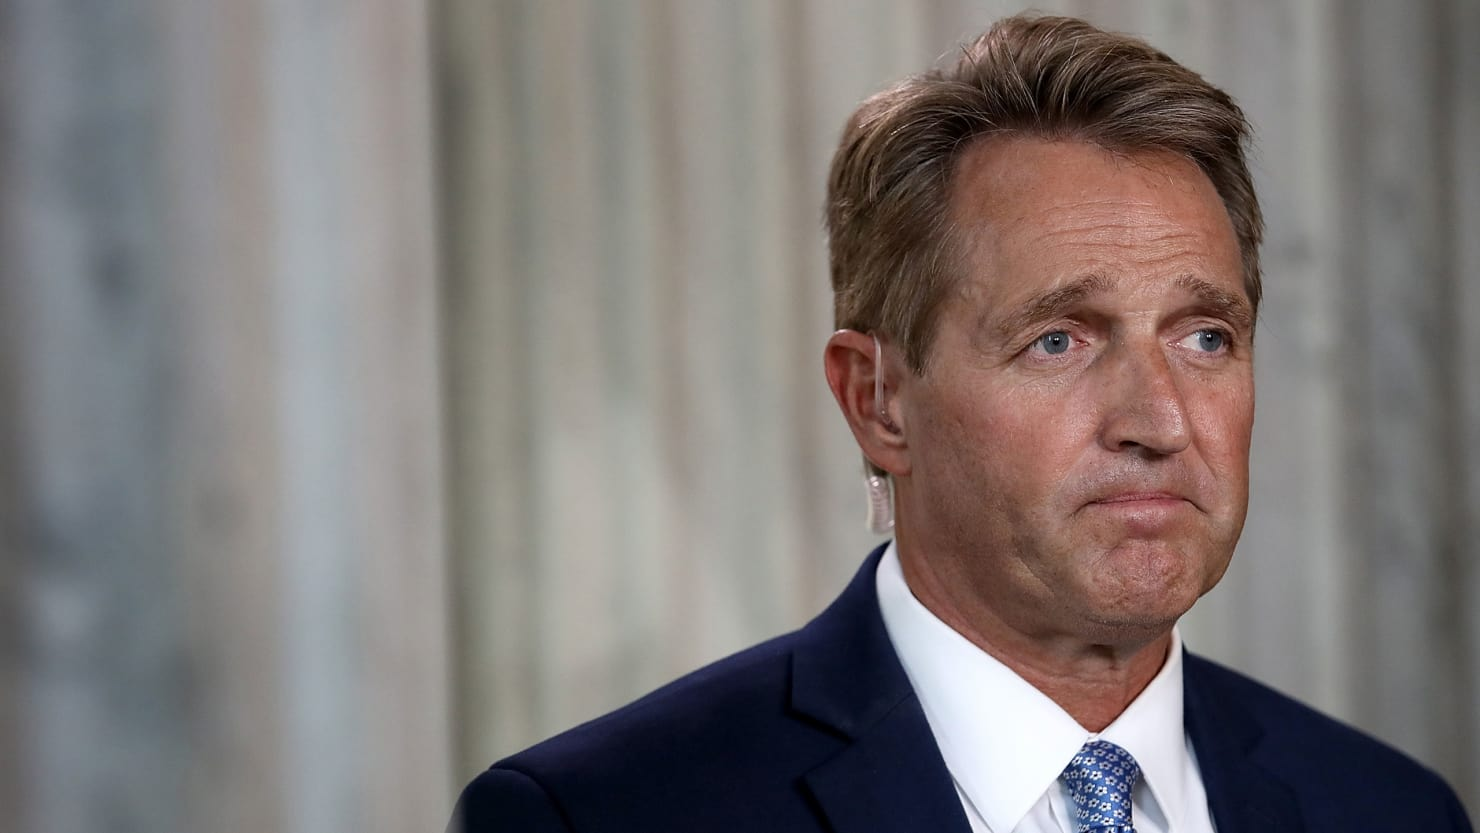 Flake joins Corker in protest as Trump continues to uproot political landscape